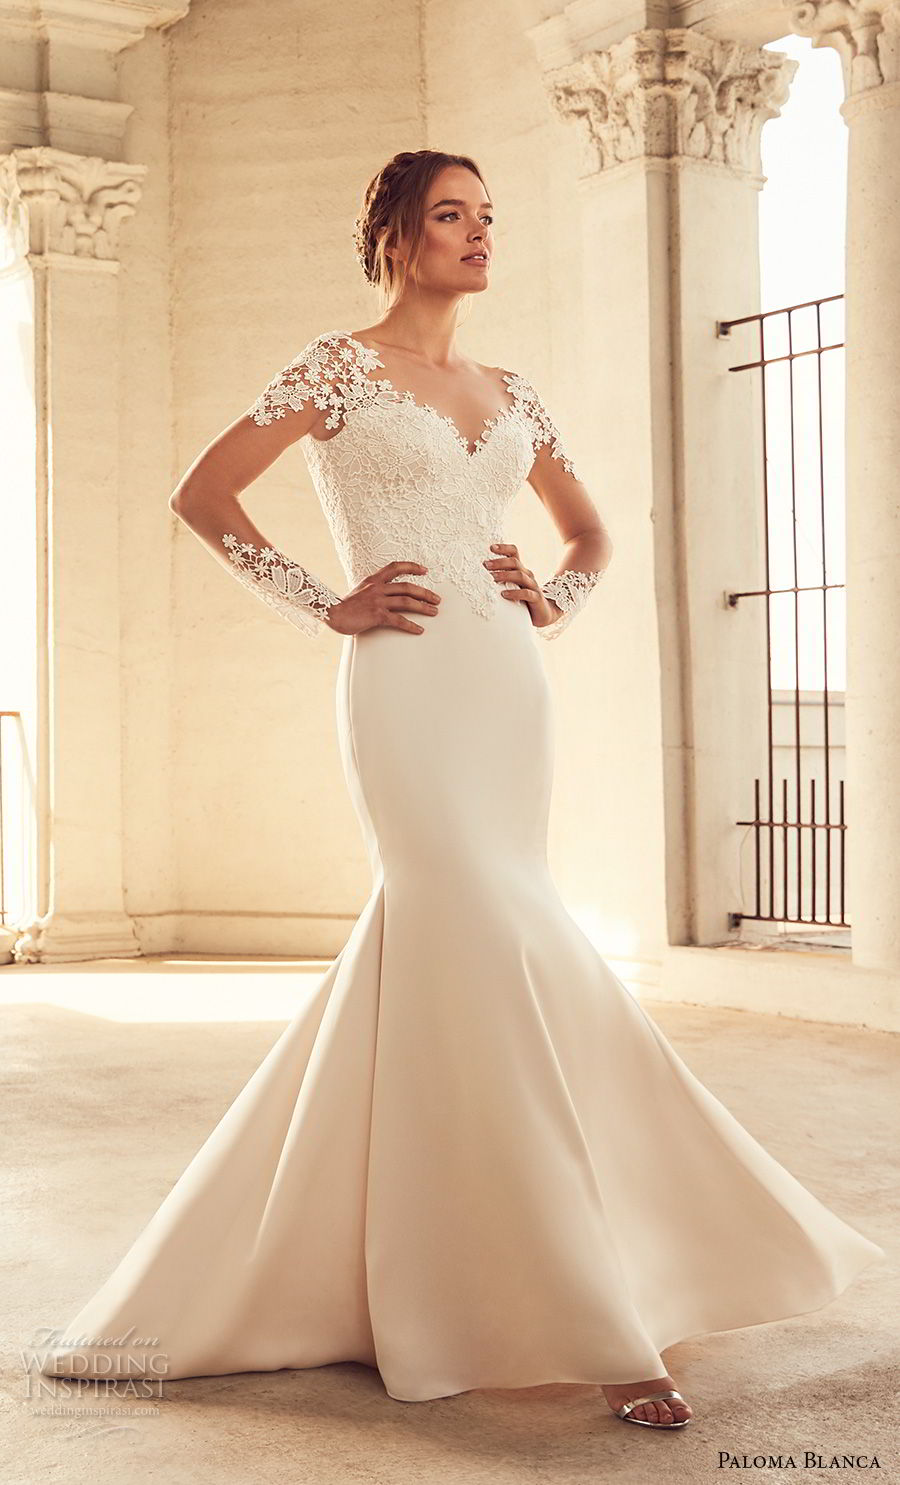 paloma blanca spring 2018 bridal long sleeves sweetheart neckline heavily embellished bodice elegant mermaid wedding dress v back chapel train (8) mv